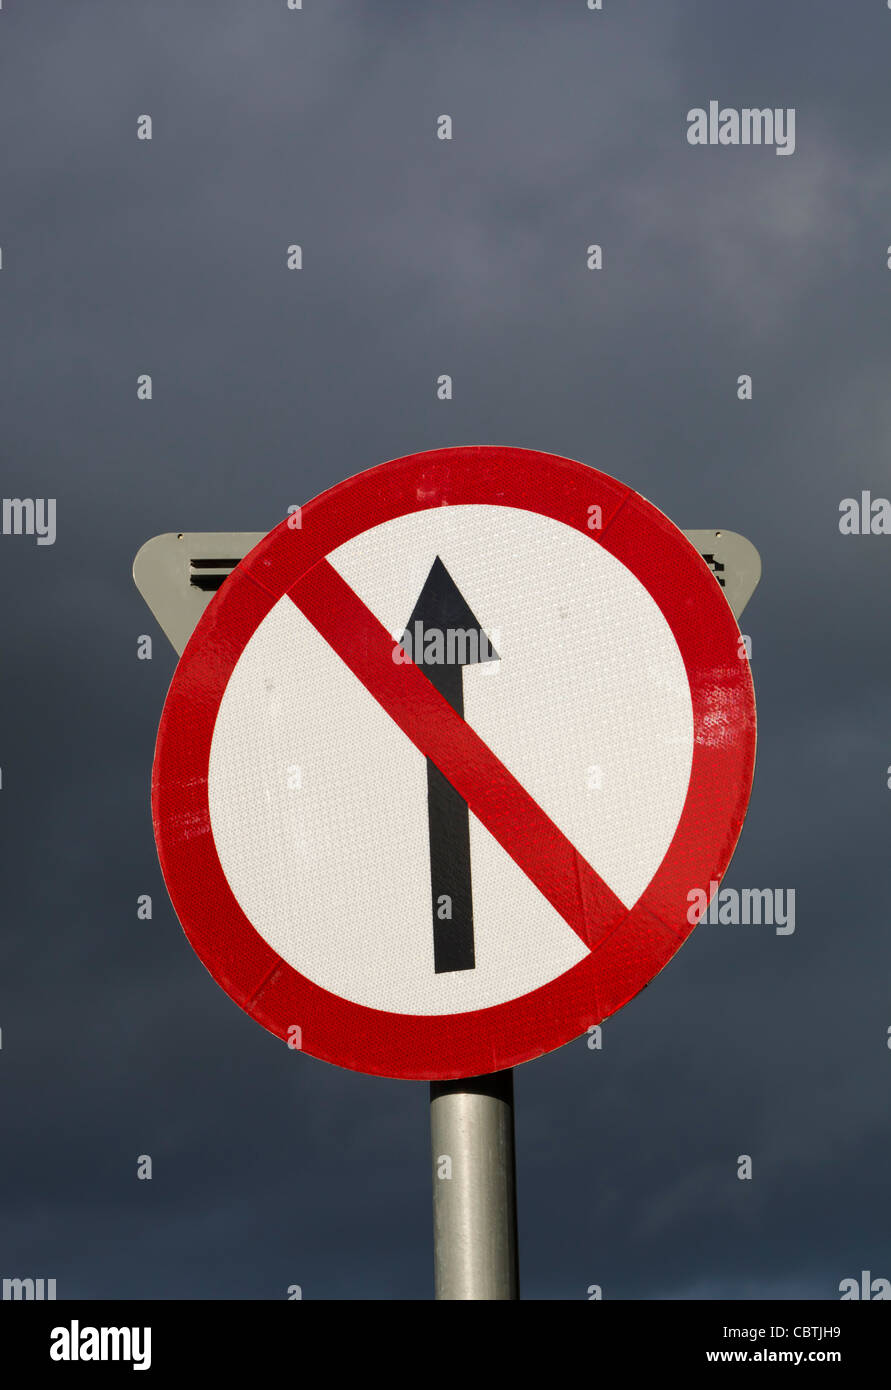 No Entry traffic sign against stormy sky, Clonakilty, County Cork, Republic of Ireland. - Stock Image